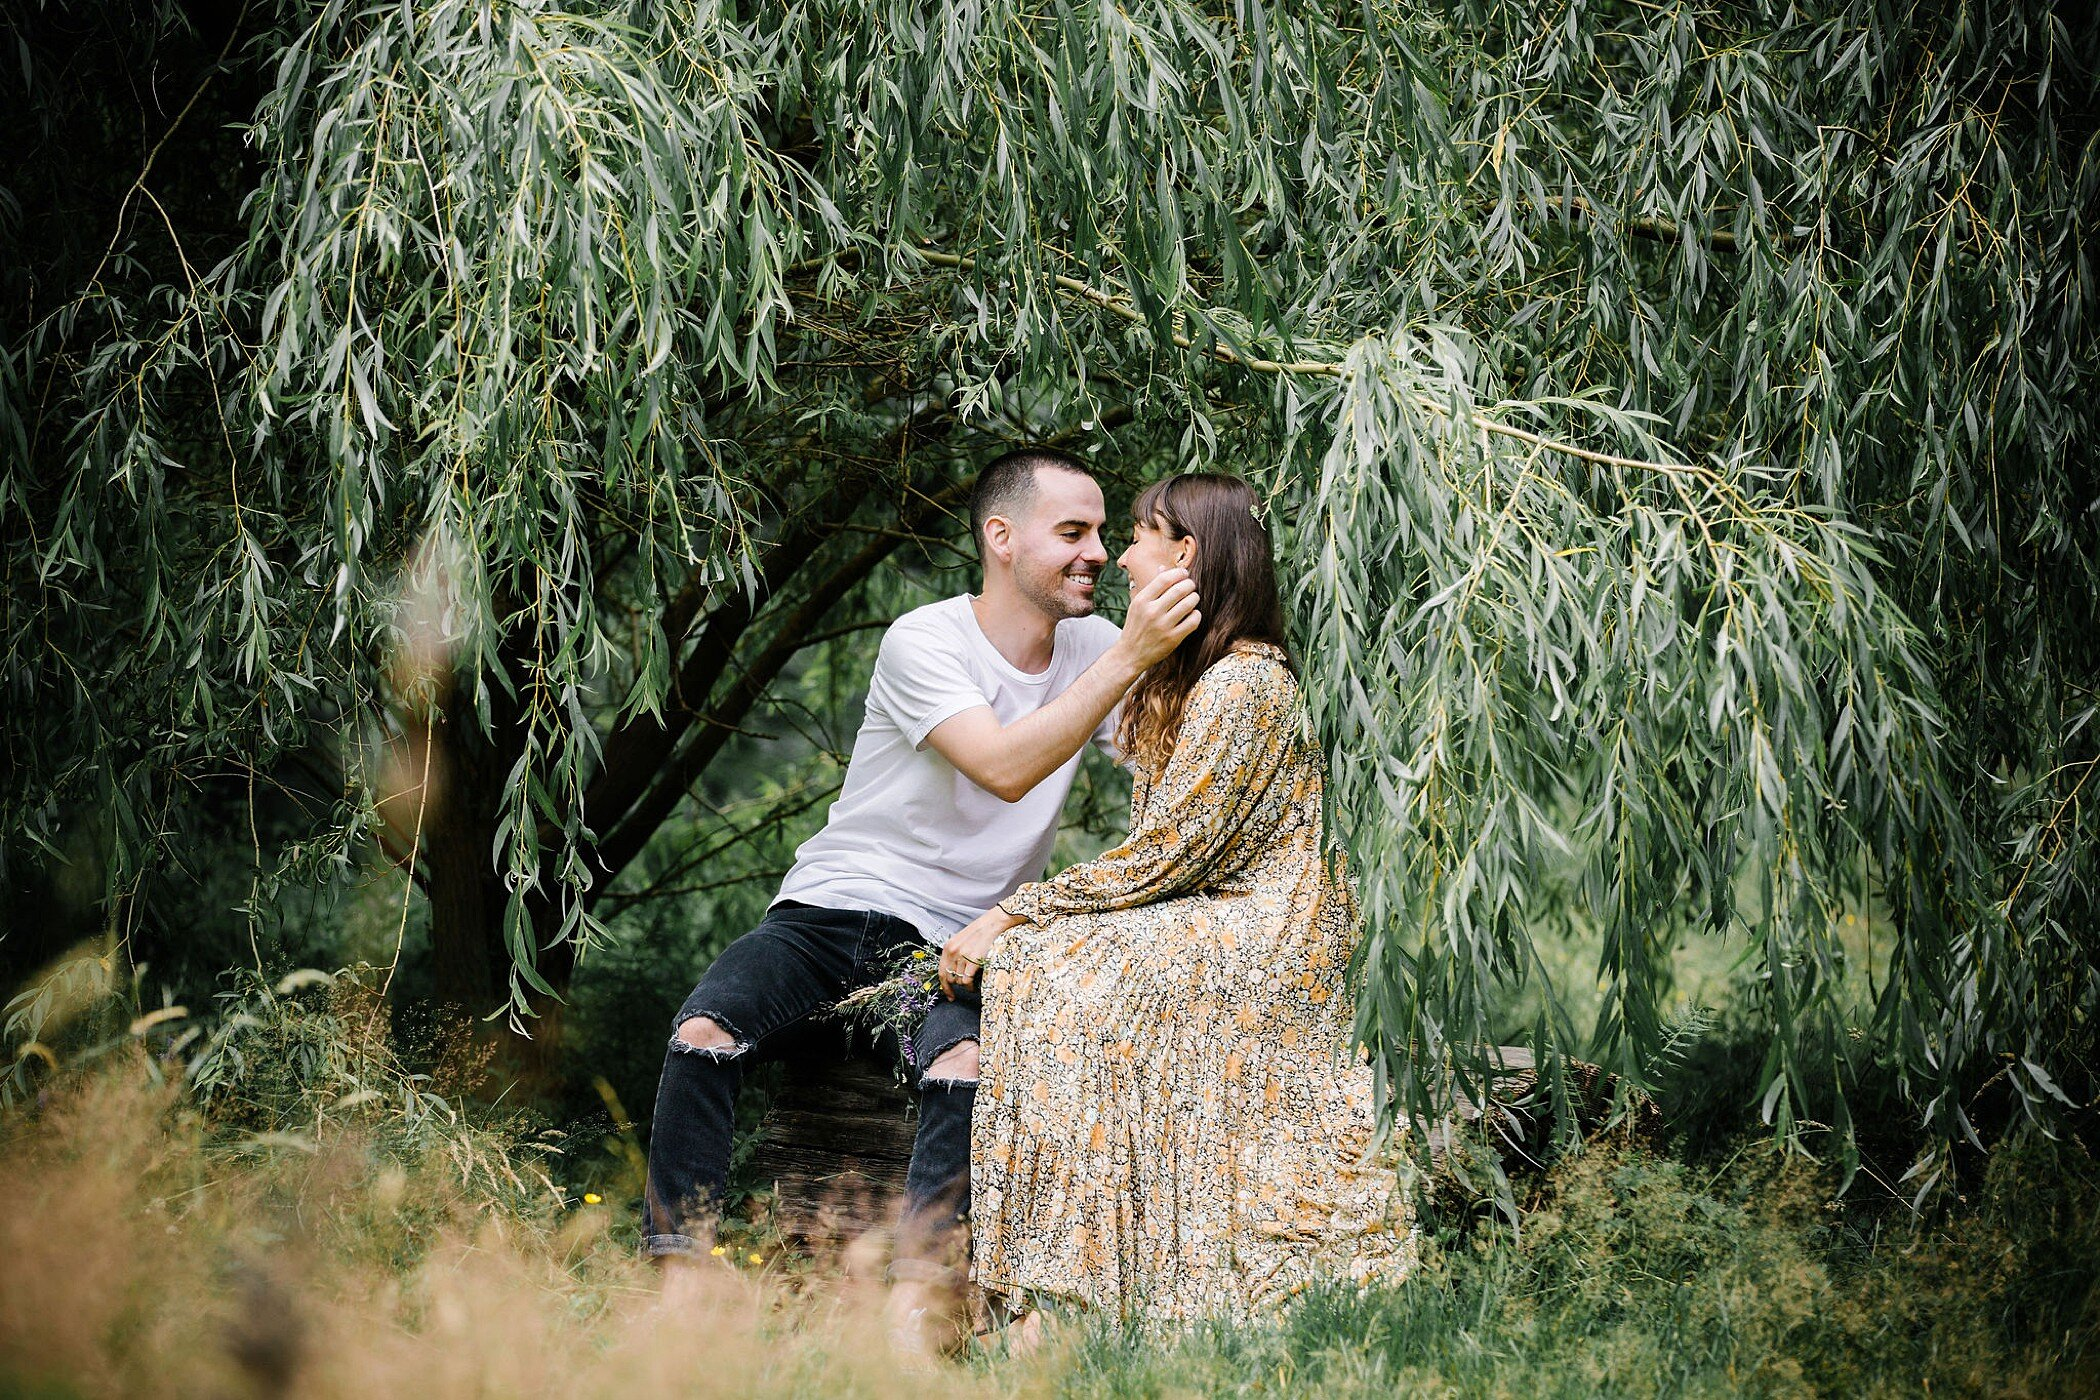 July14.DanandRo3010_Note Photography Documentary Photographer Wedding Photos Vancouver B.C. Best 2019 2020 Jericho Beach Engagement Session Gastown Di Beppe DiBeppe.jpg